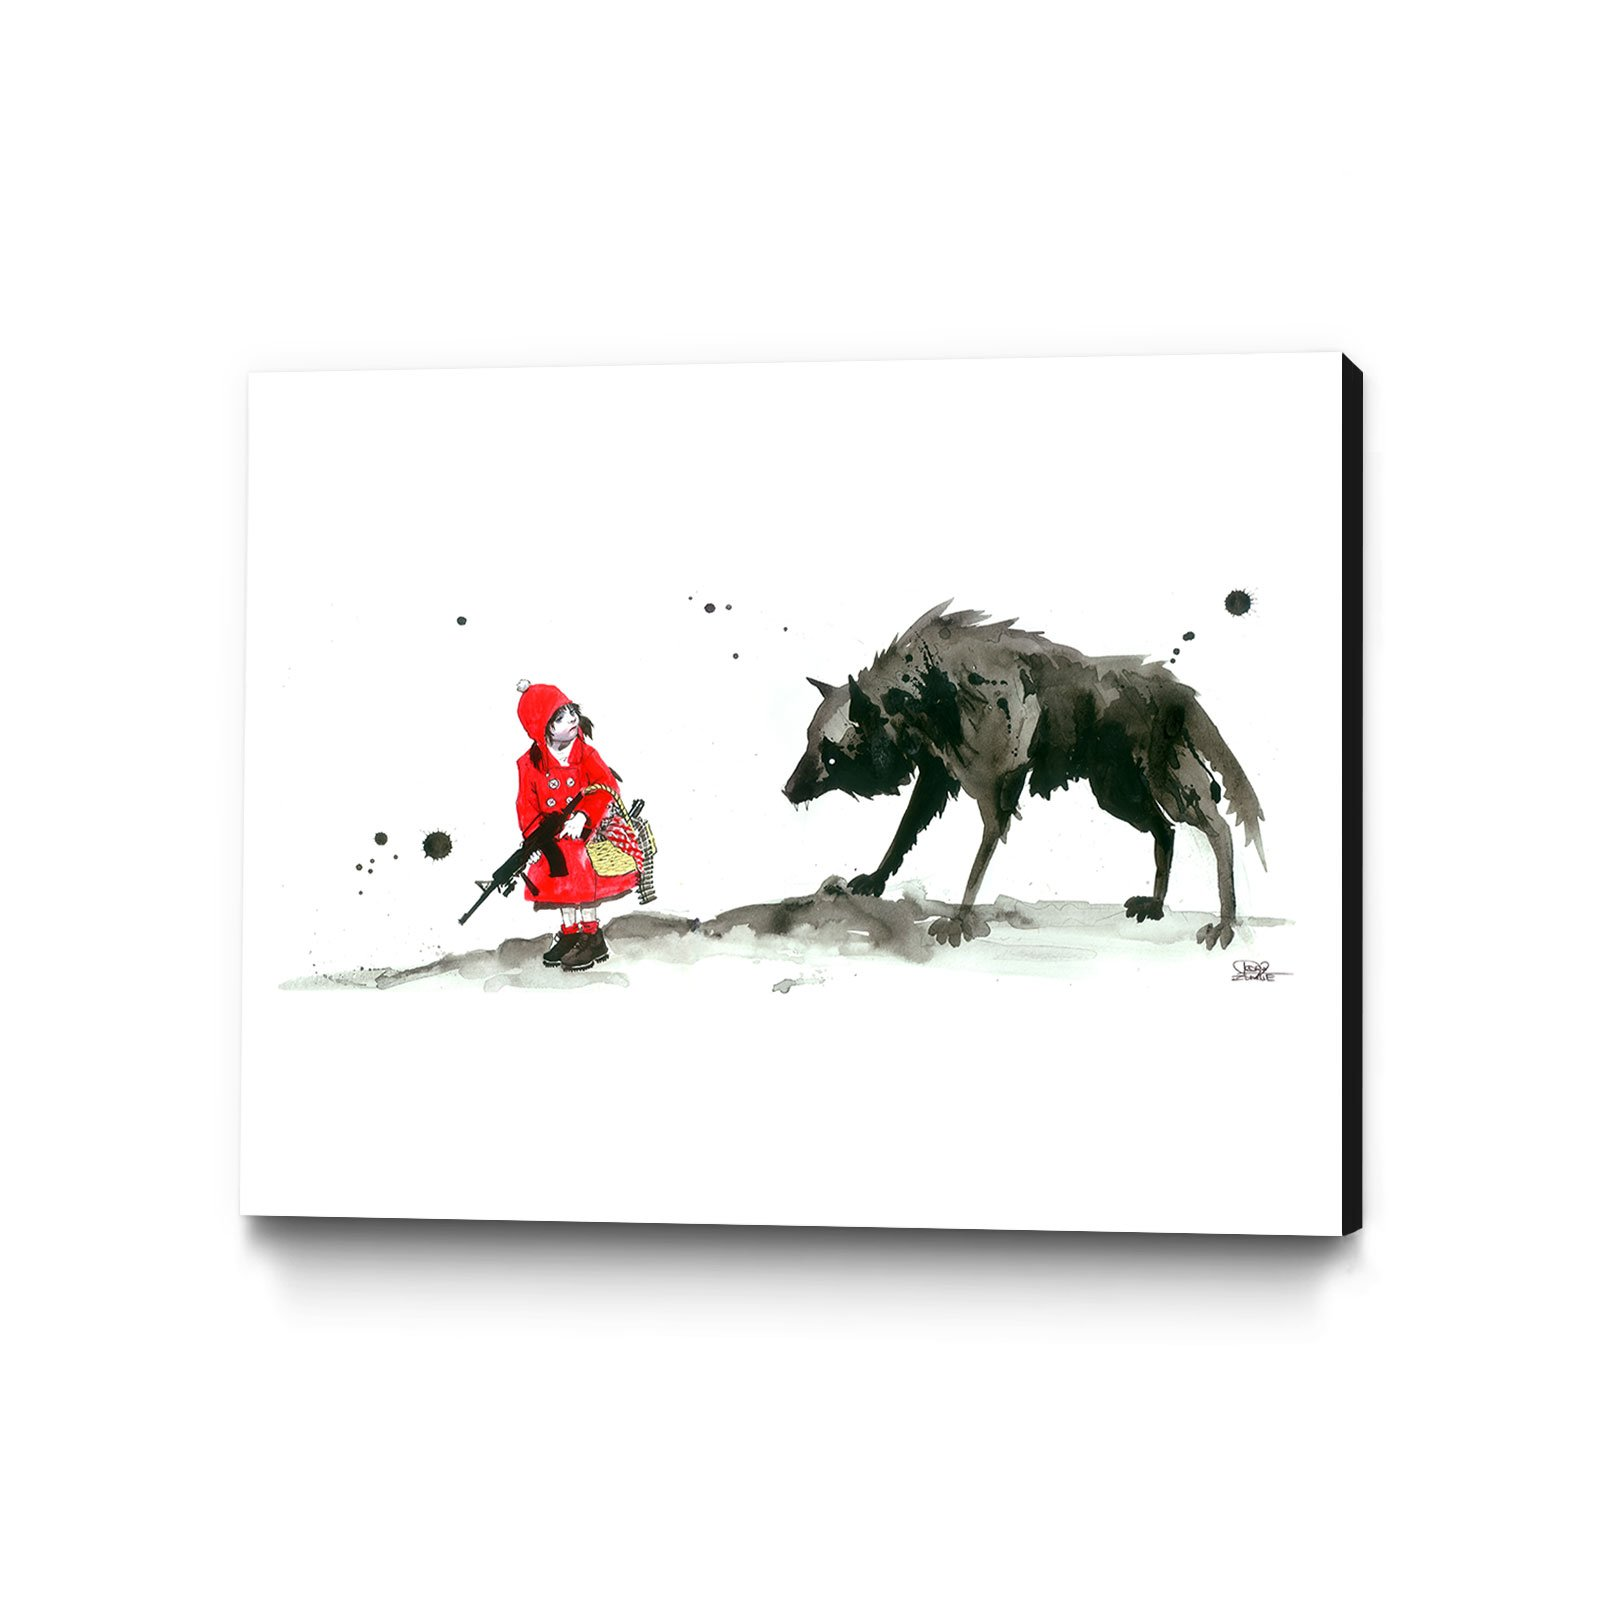 Red Riding Hood by